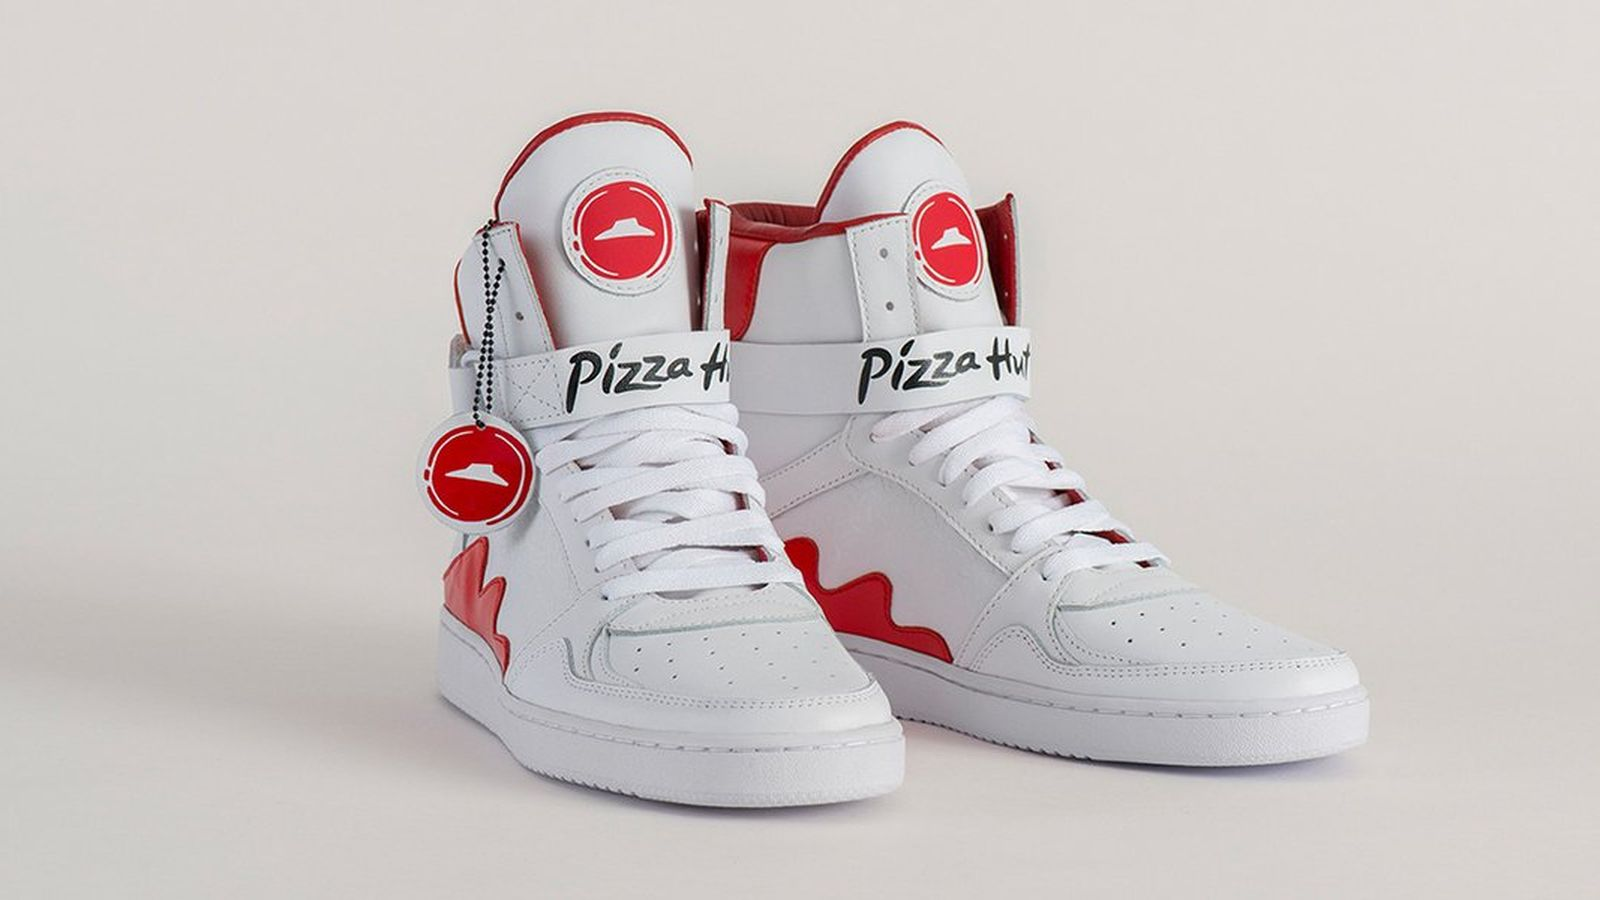 Pizza Hut lance des sneakers capables de commander une pizza